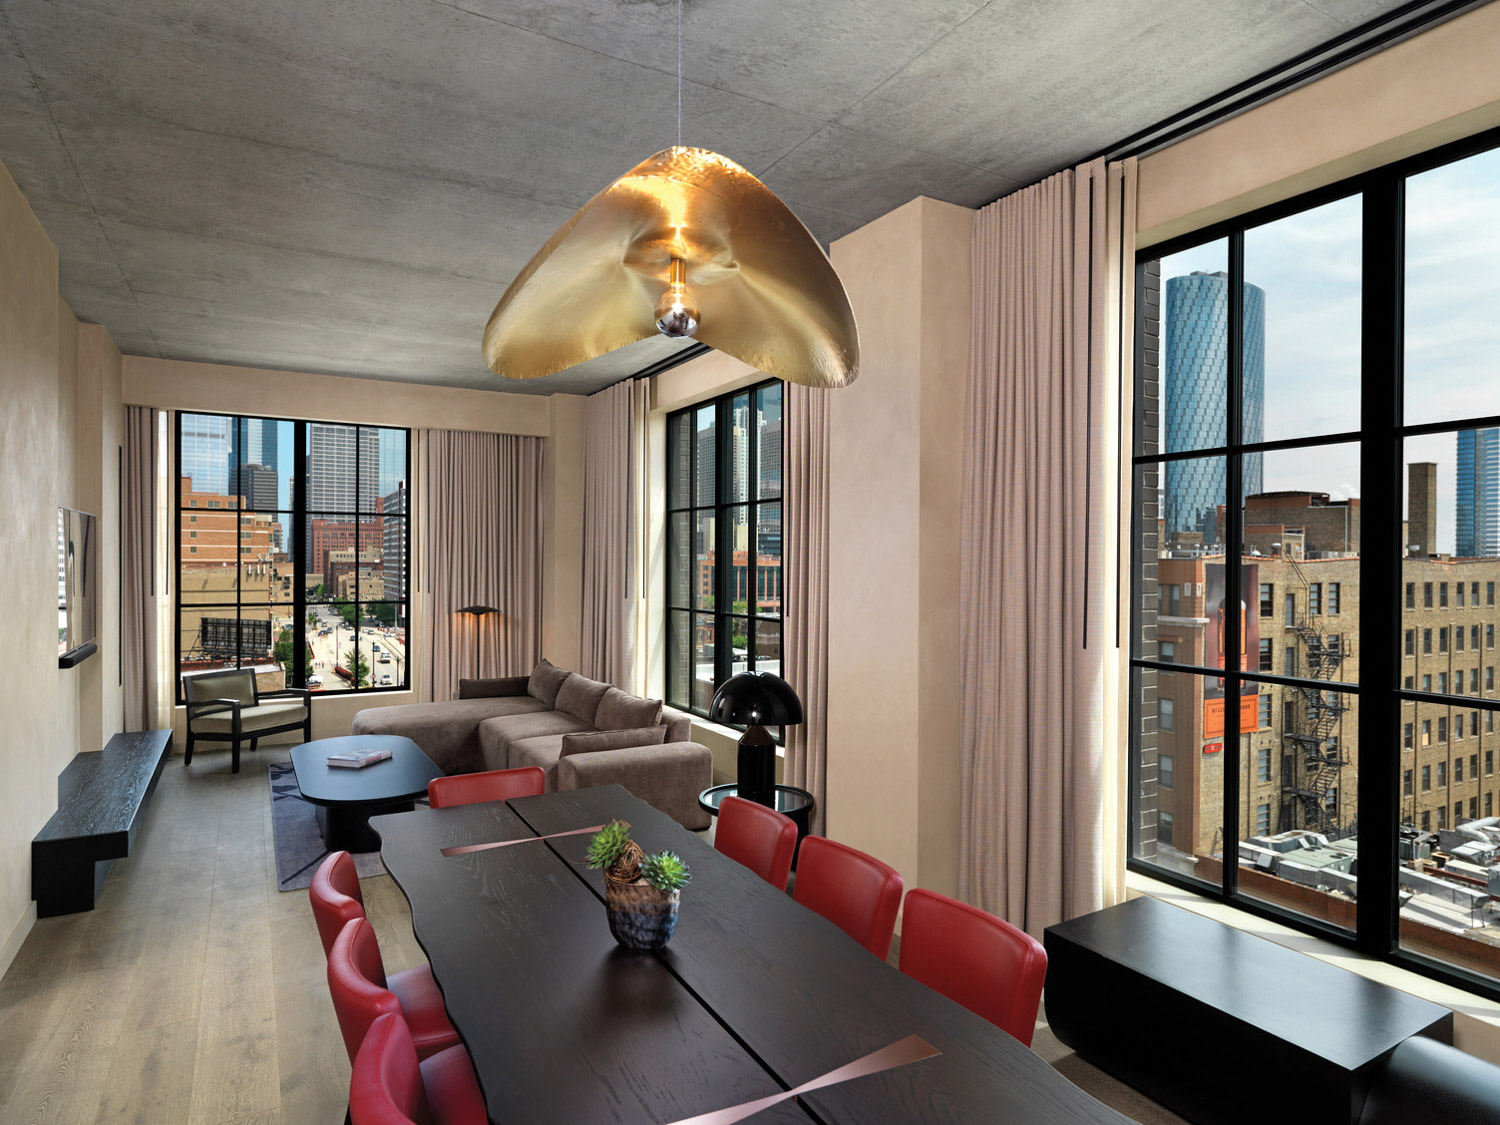 Dining table with red chairs in hotel suite